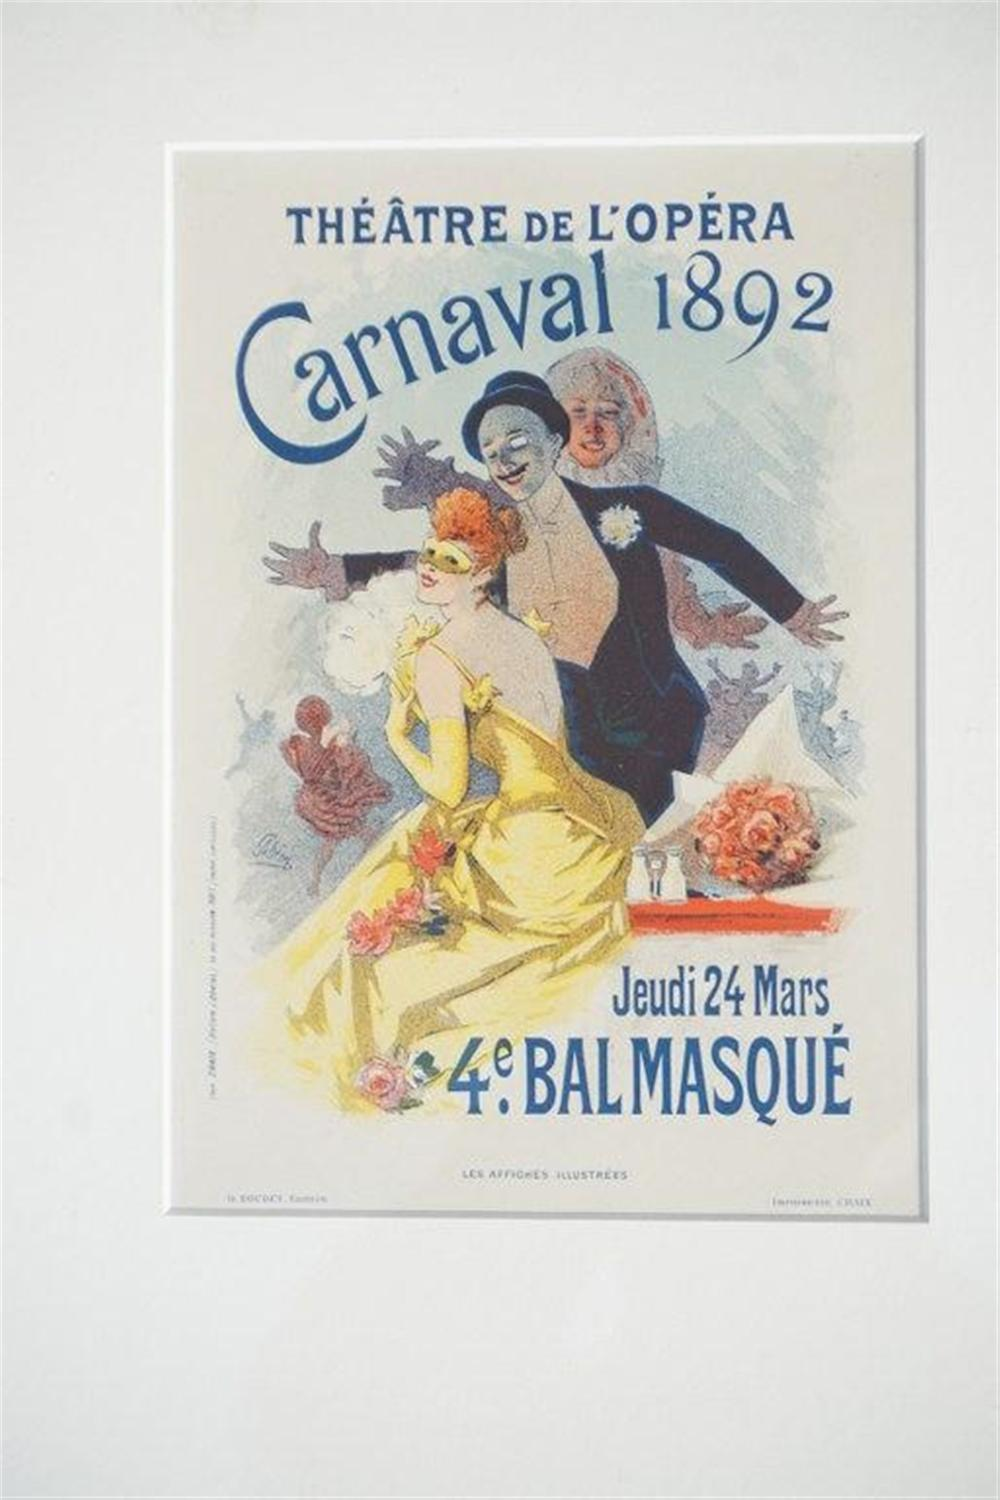 "1896 CHERET THEATRE DE L' OPERA CARNAVAL 1892 STONE LITHO FRENCH POSTER, SHEET SIZE 8 3/4"" X 12 1/4"", EXCELLENT CONDITION, SHRINK WRAPPED AND MATTED, FROM RETIRED DEALERS COLLECTION. IMPRIMERIE CHAIX."